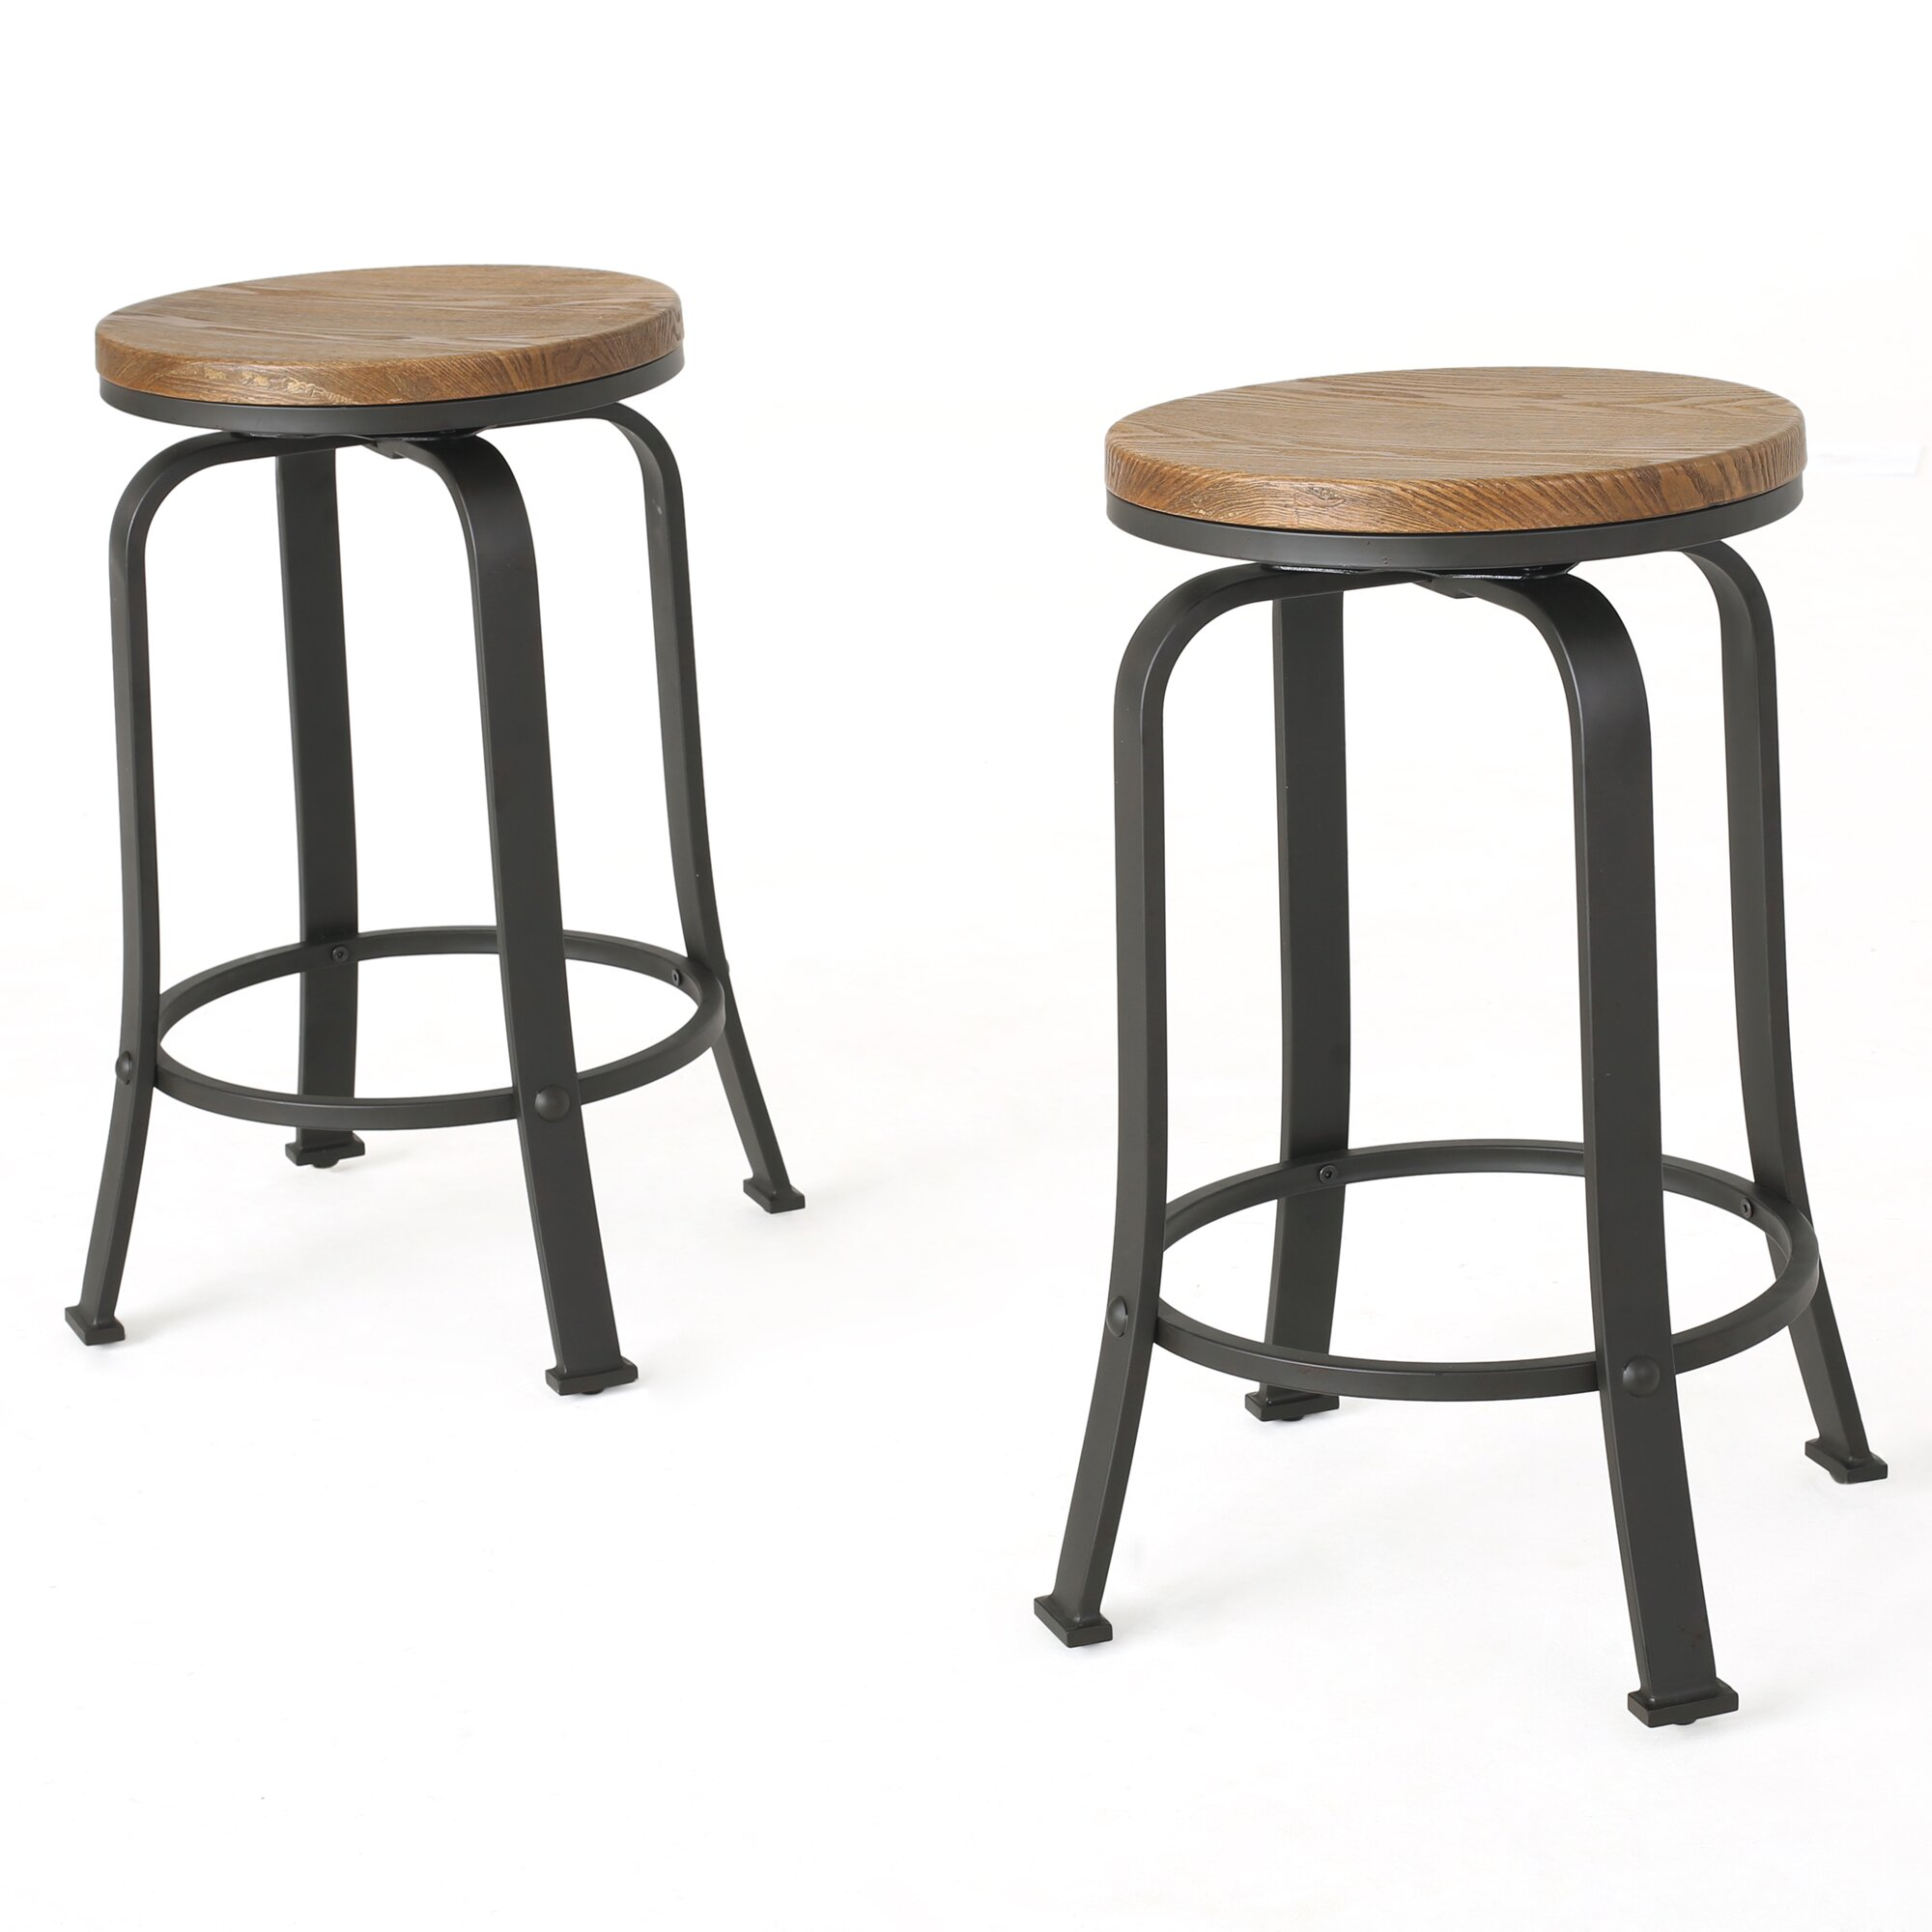 Darby Home Co Fortville 24quot Swivel Bar Stool amp Reviews  : Fortville2422SwivelBarStool from www.wayfair.com size 2000 x 2000 jpeg 178kB